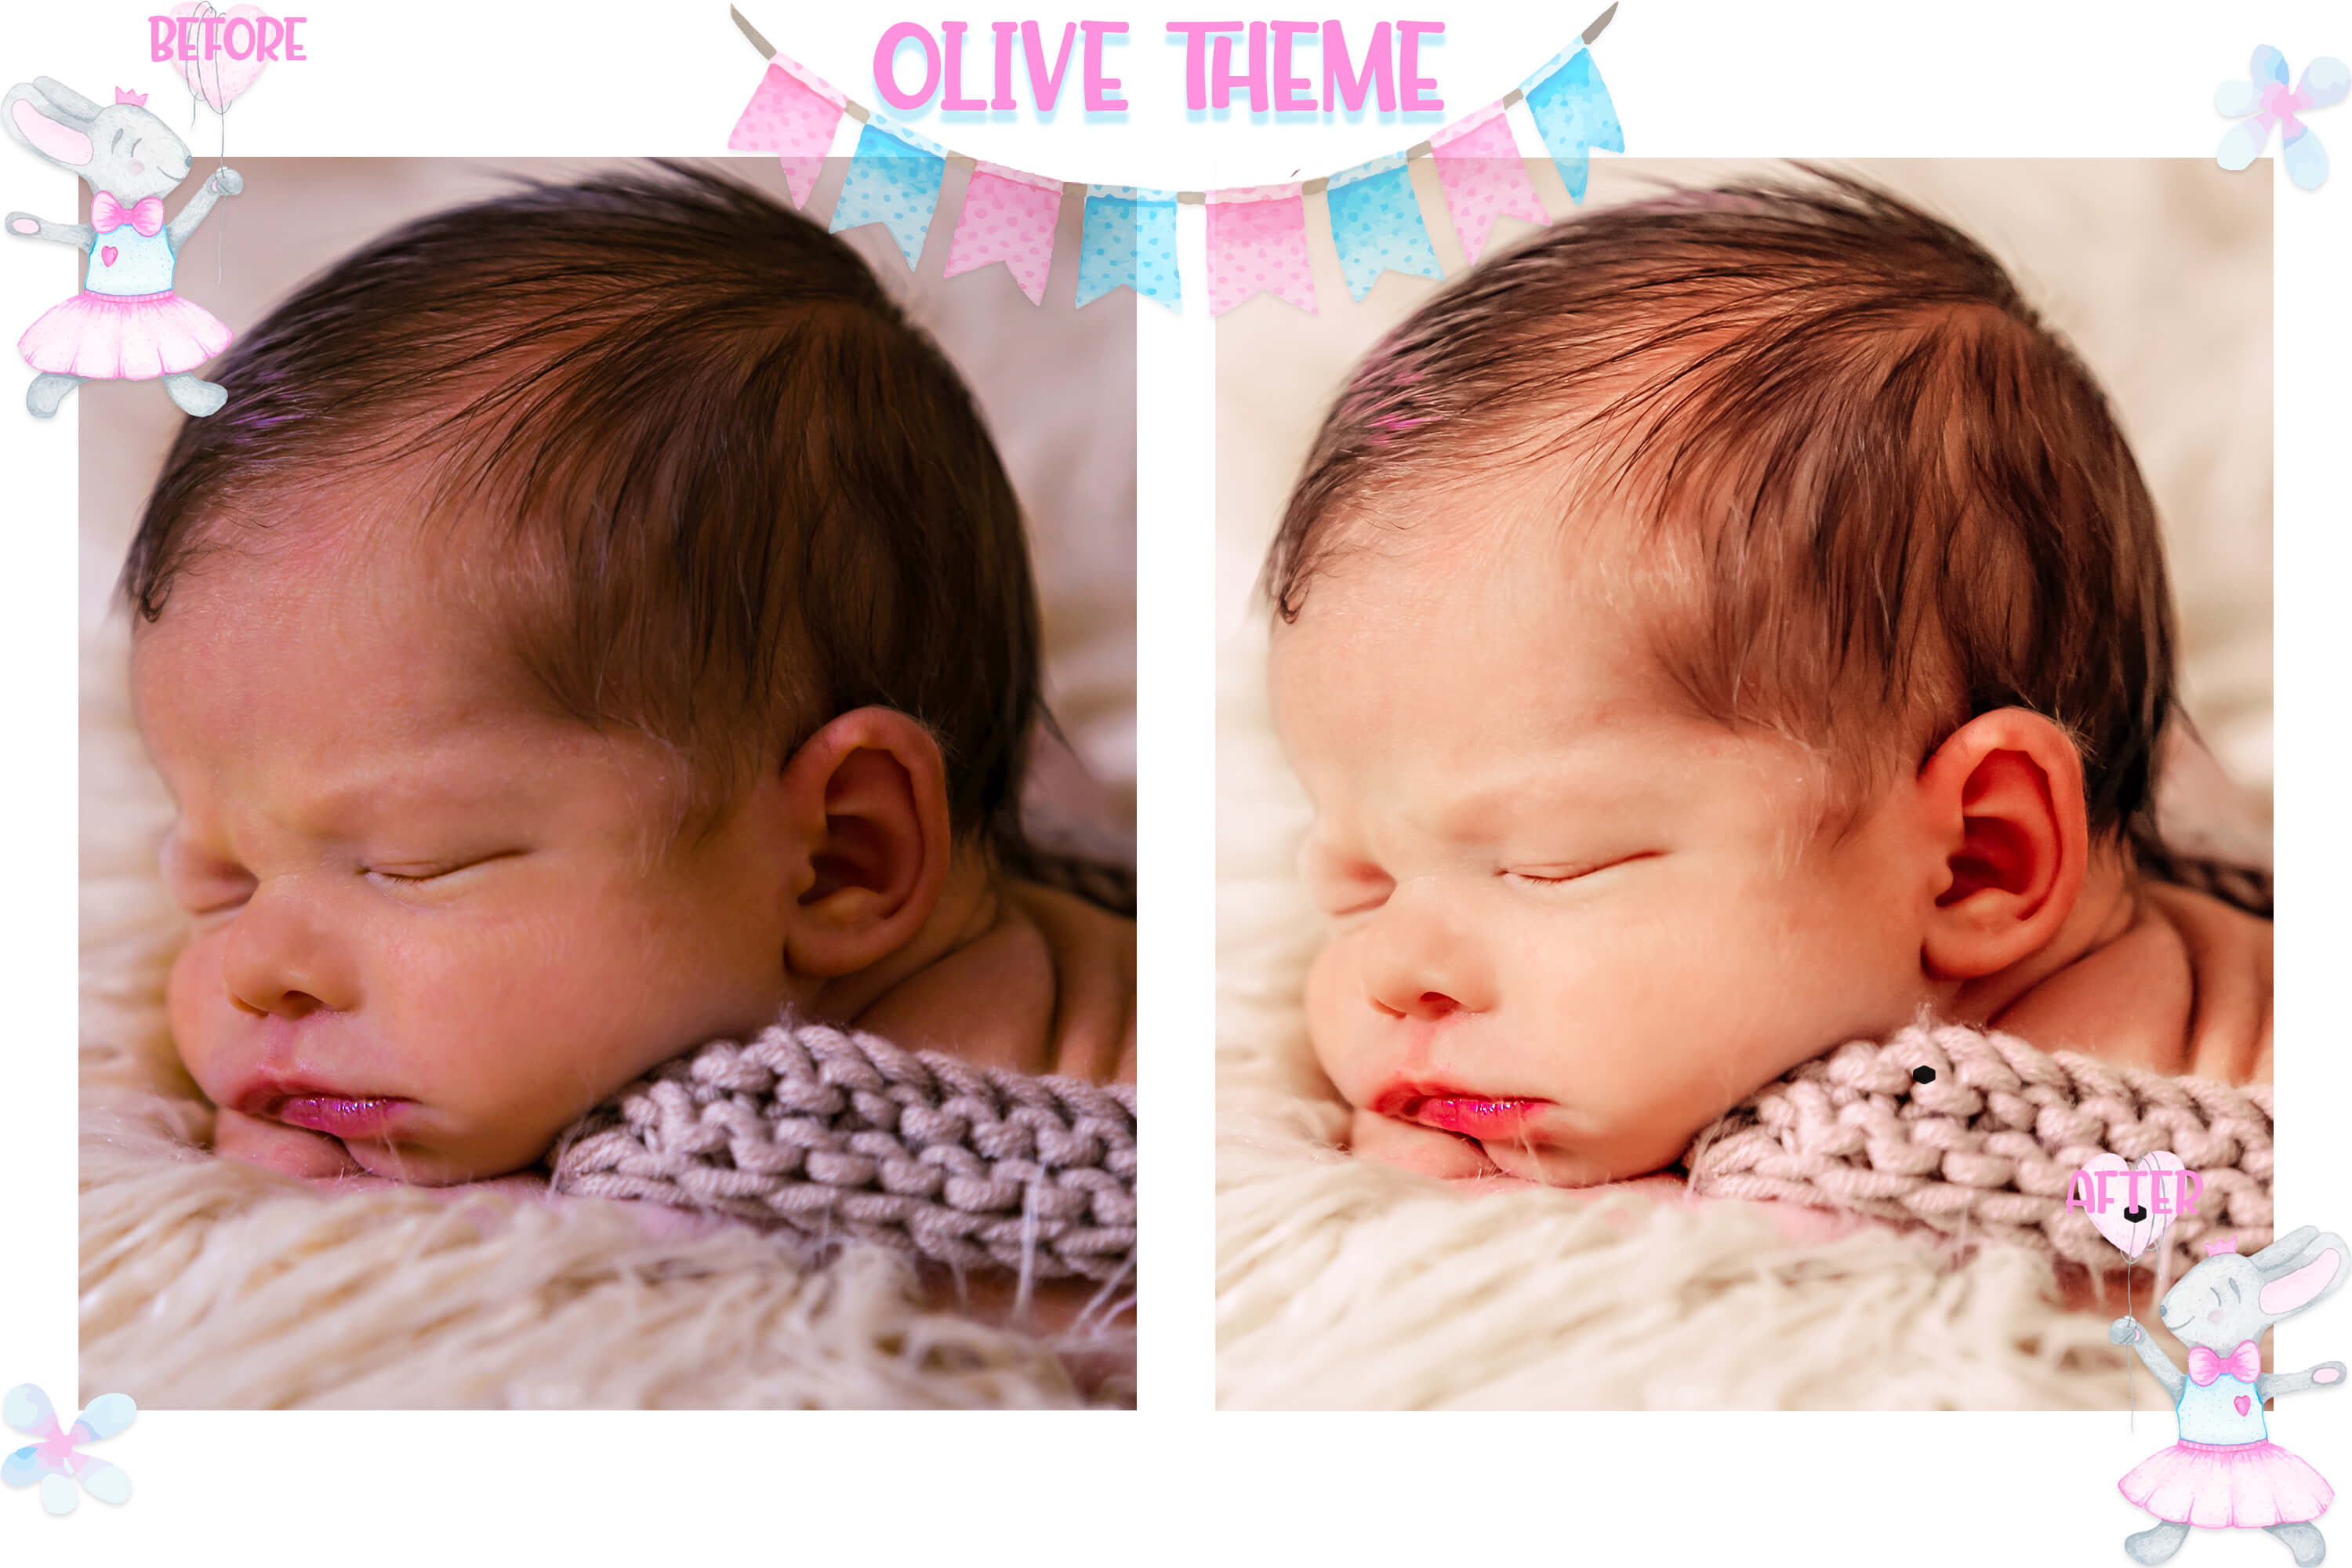 10 Newborn Mobile & Desktop Lightroom Presets, baby skin LR example image 7